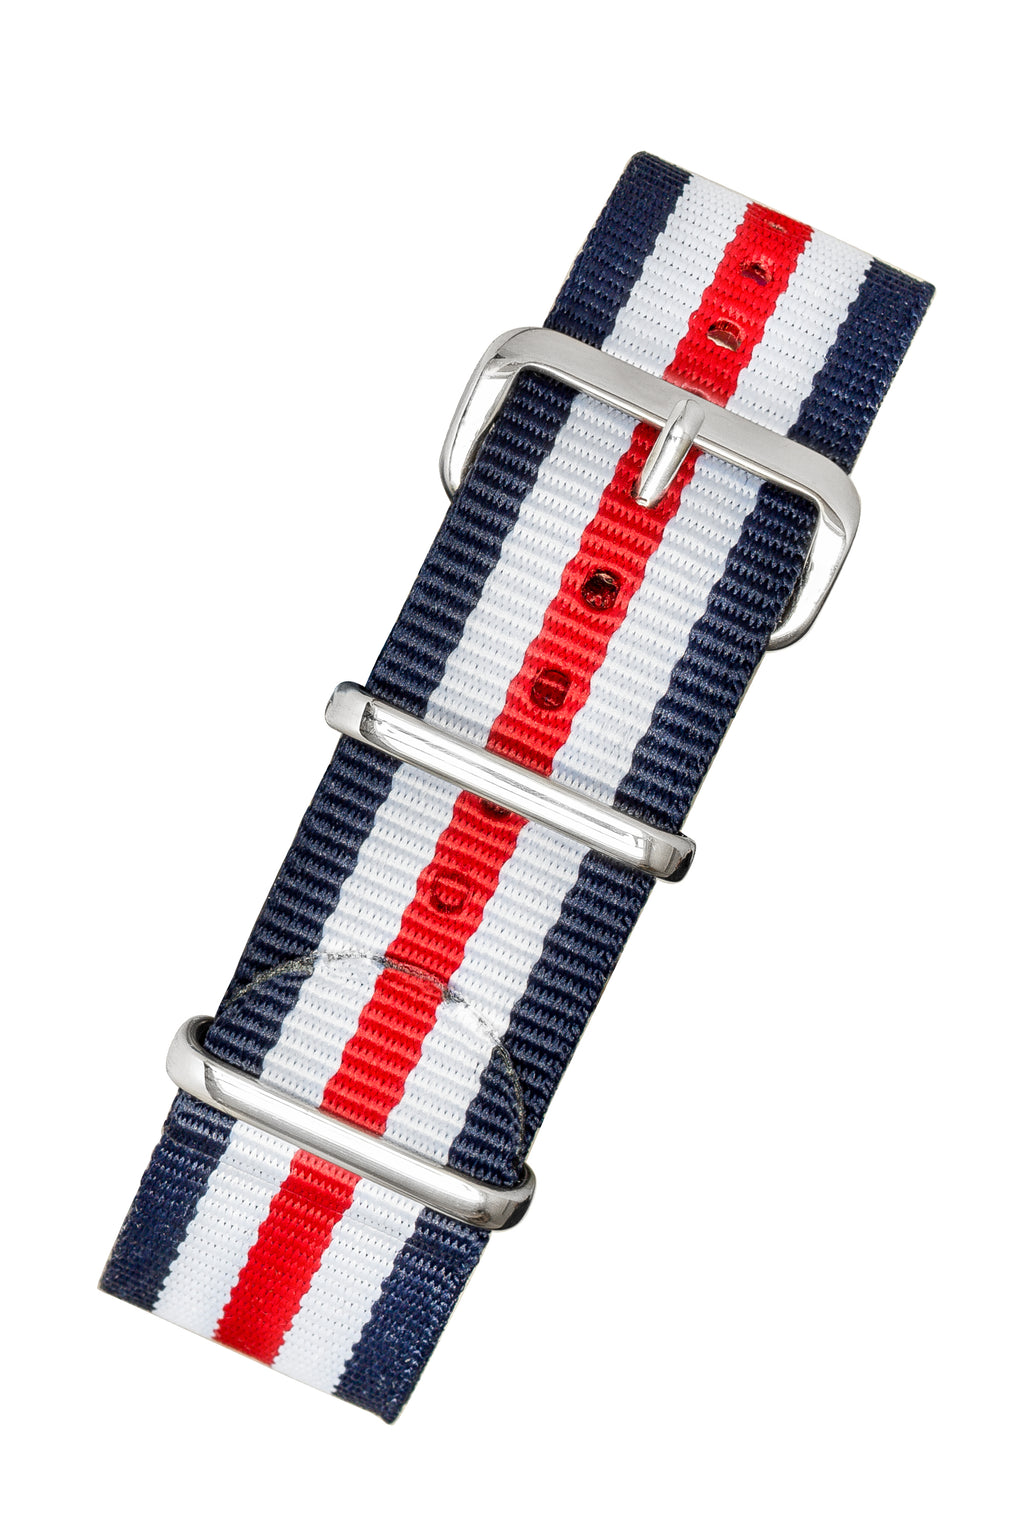 NATO Watch Straps in BLUE/WHITE/RED Thin Stripes